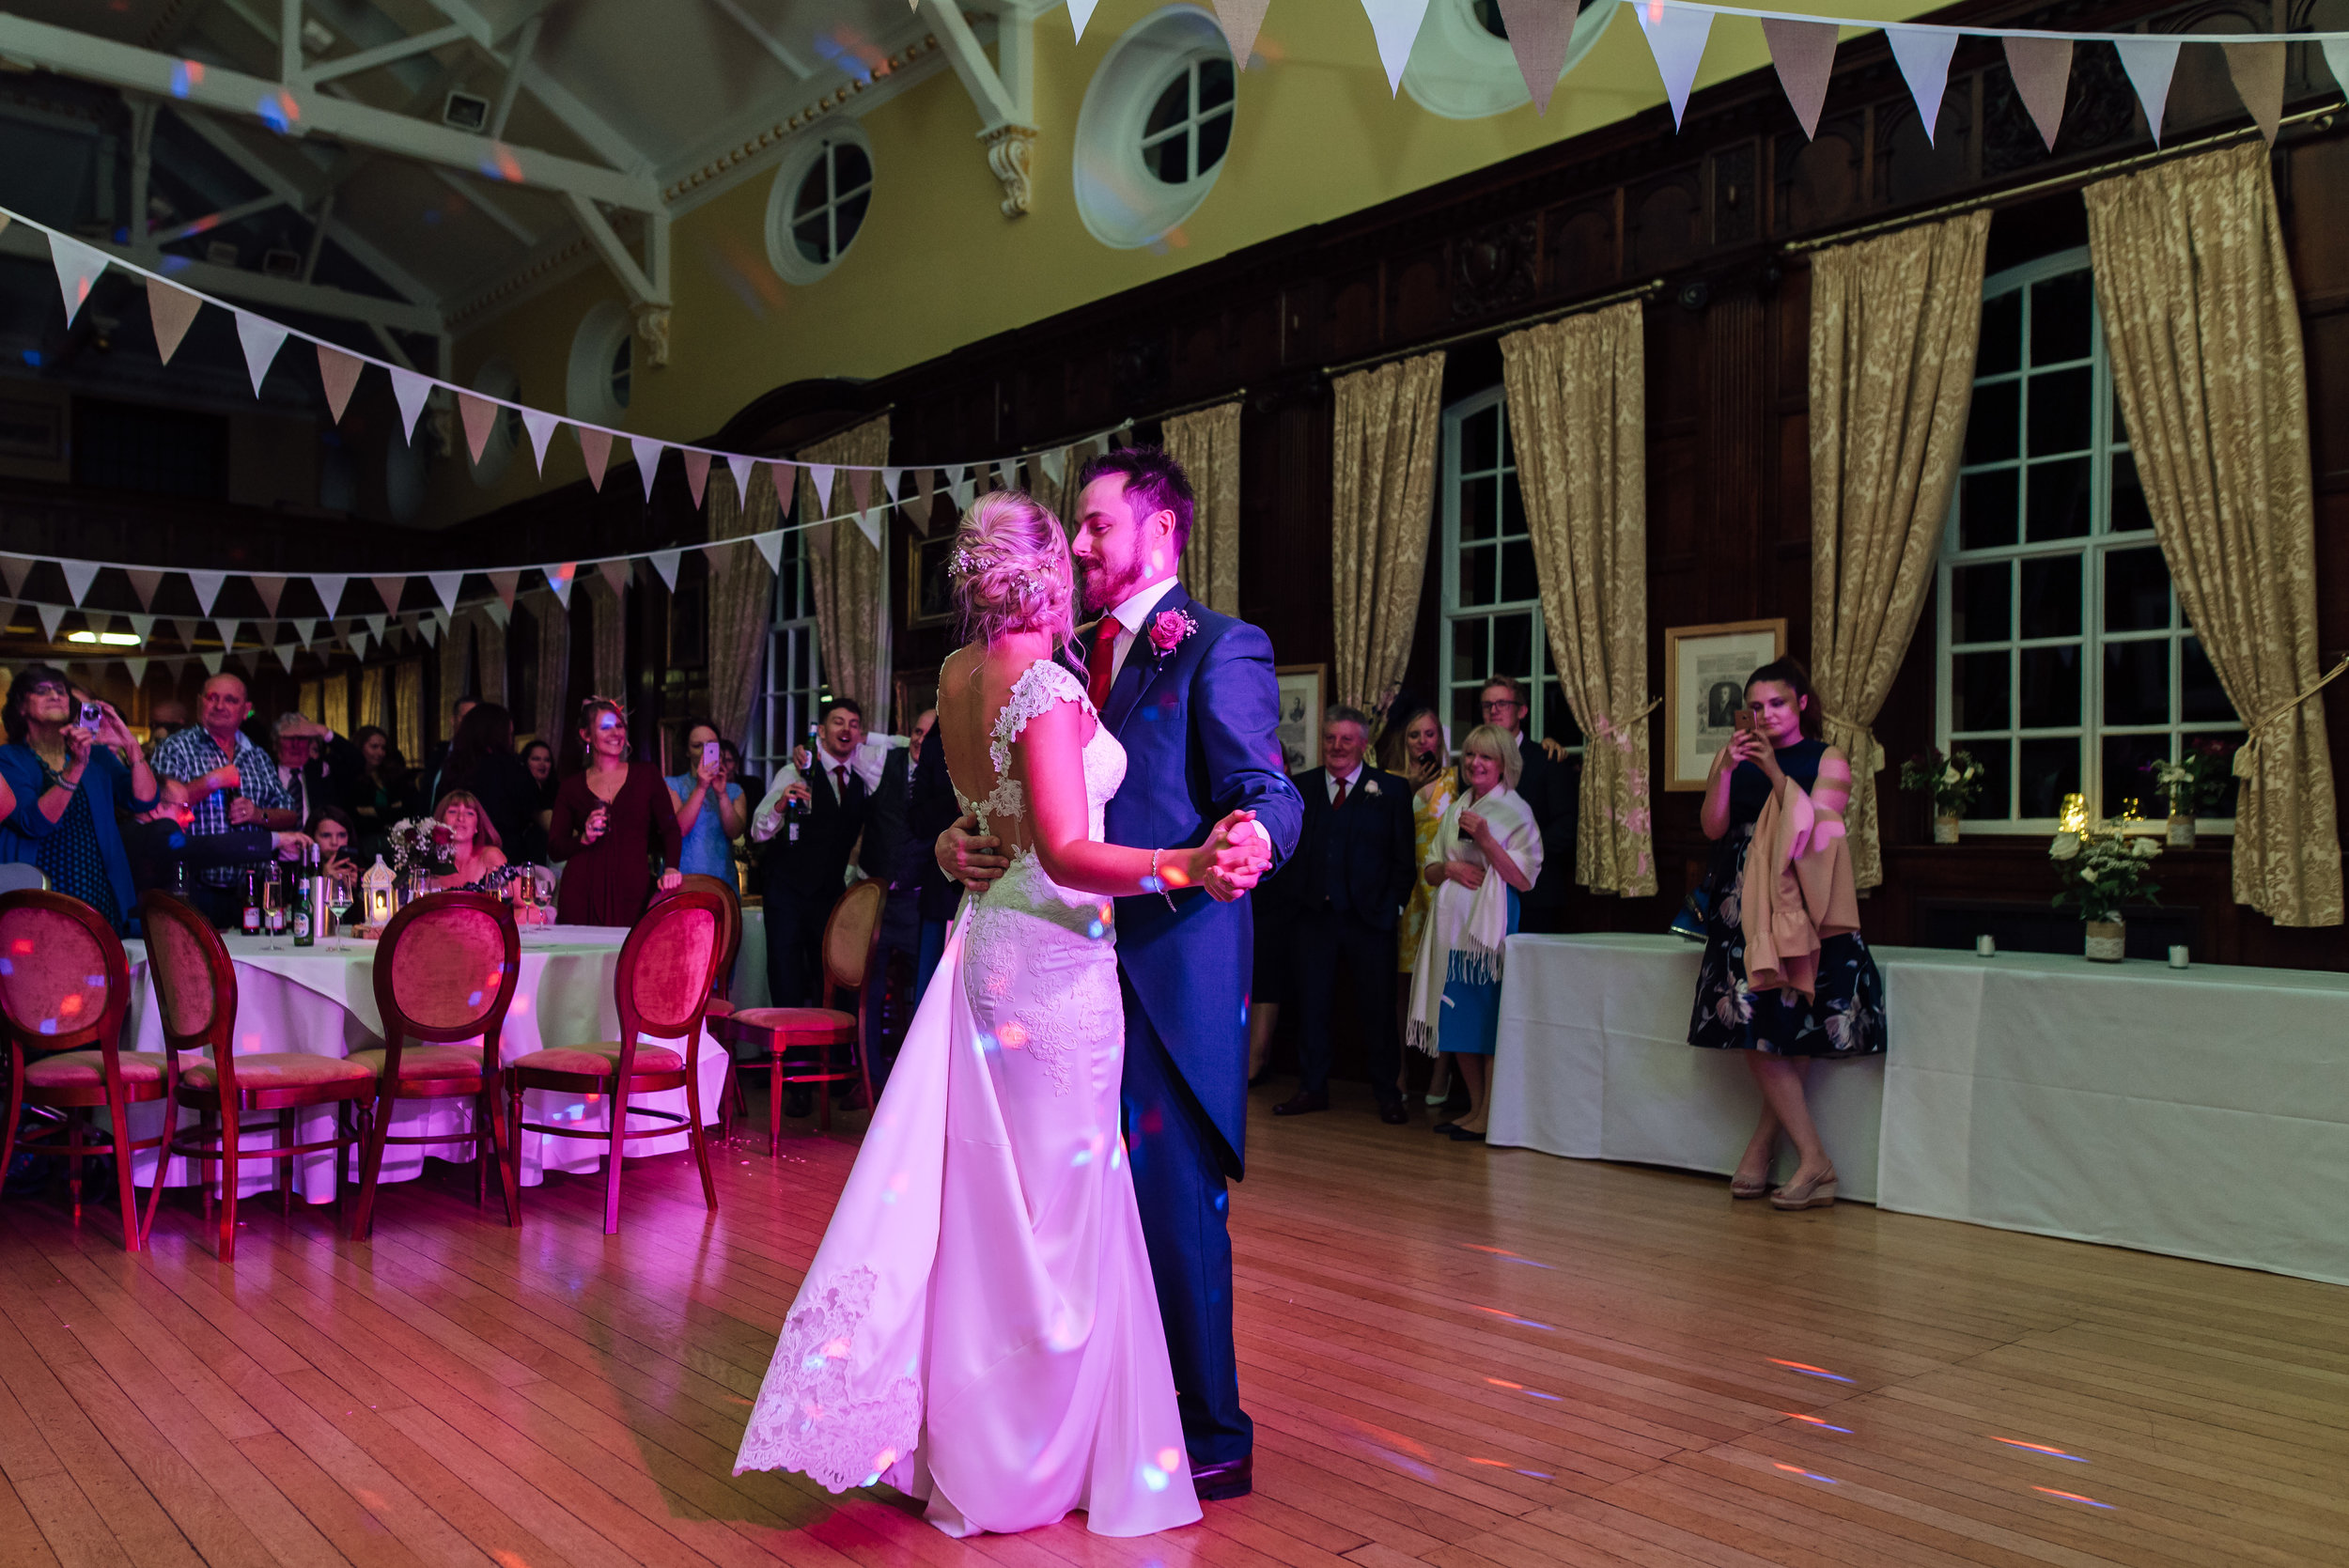 Hampshire-wedding-photographer-hampshire : fleet-wedding-photogrpher-farnborough : wellington-college-wedding : amy-james-photography : -892.jpg